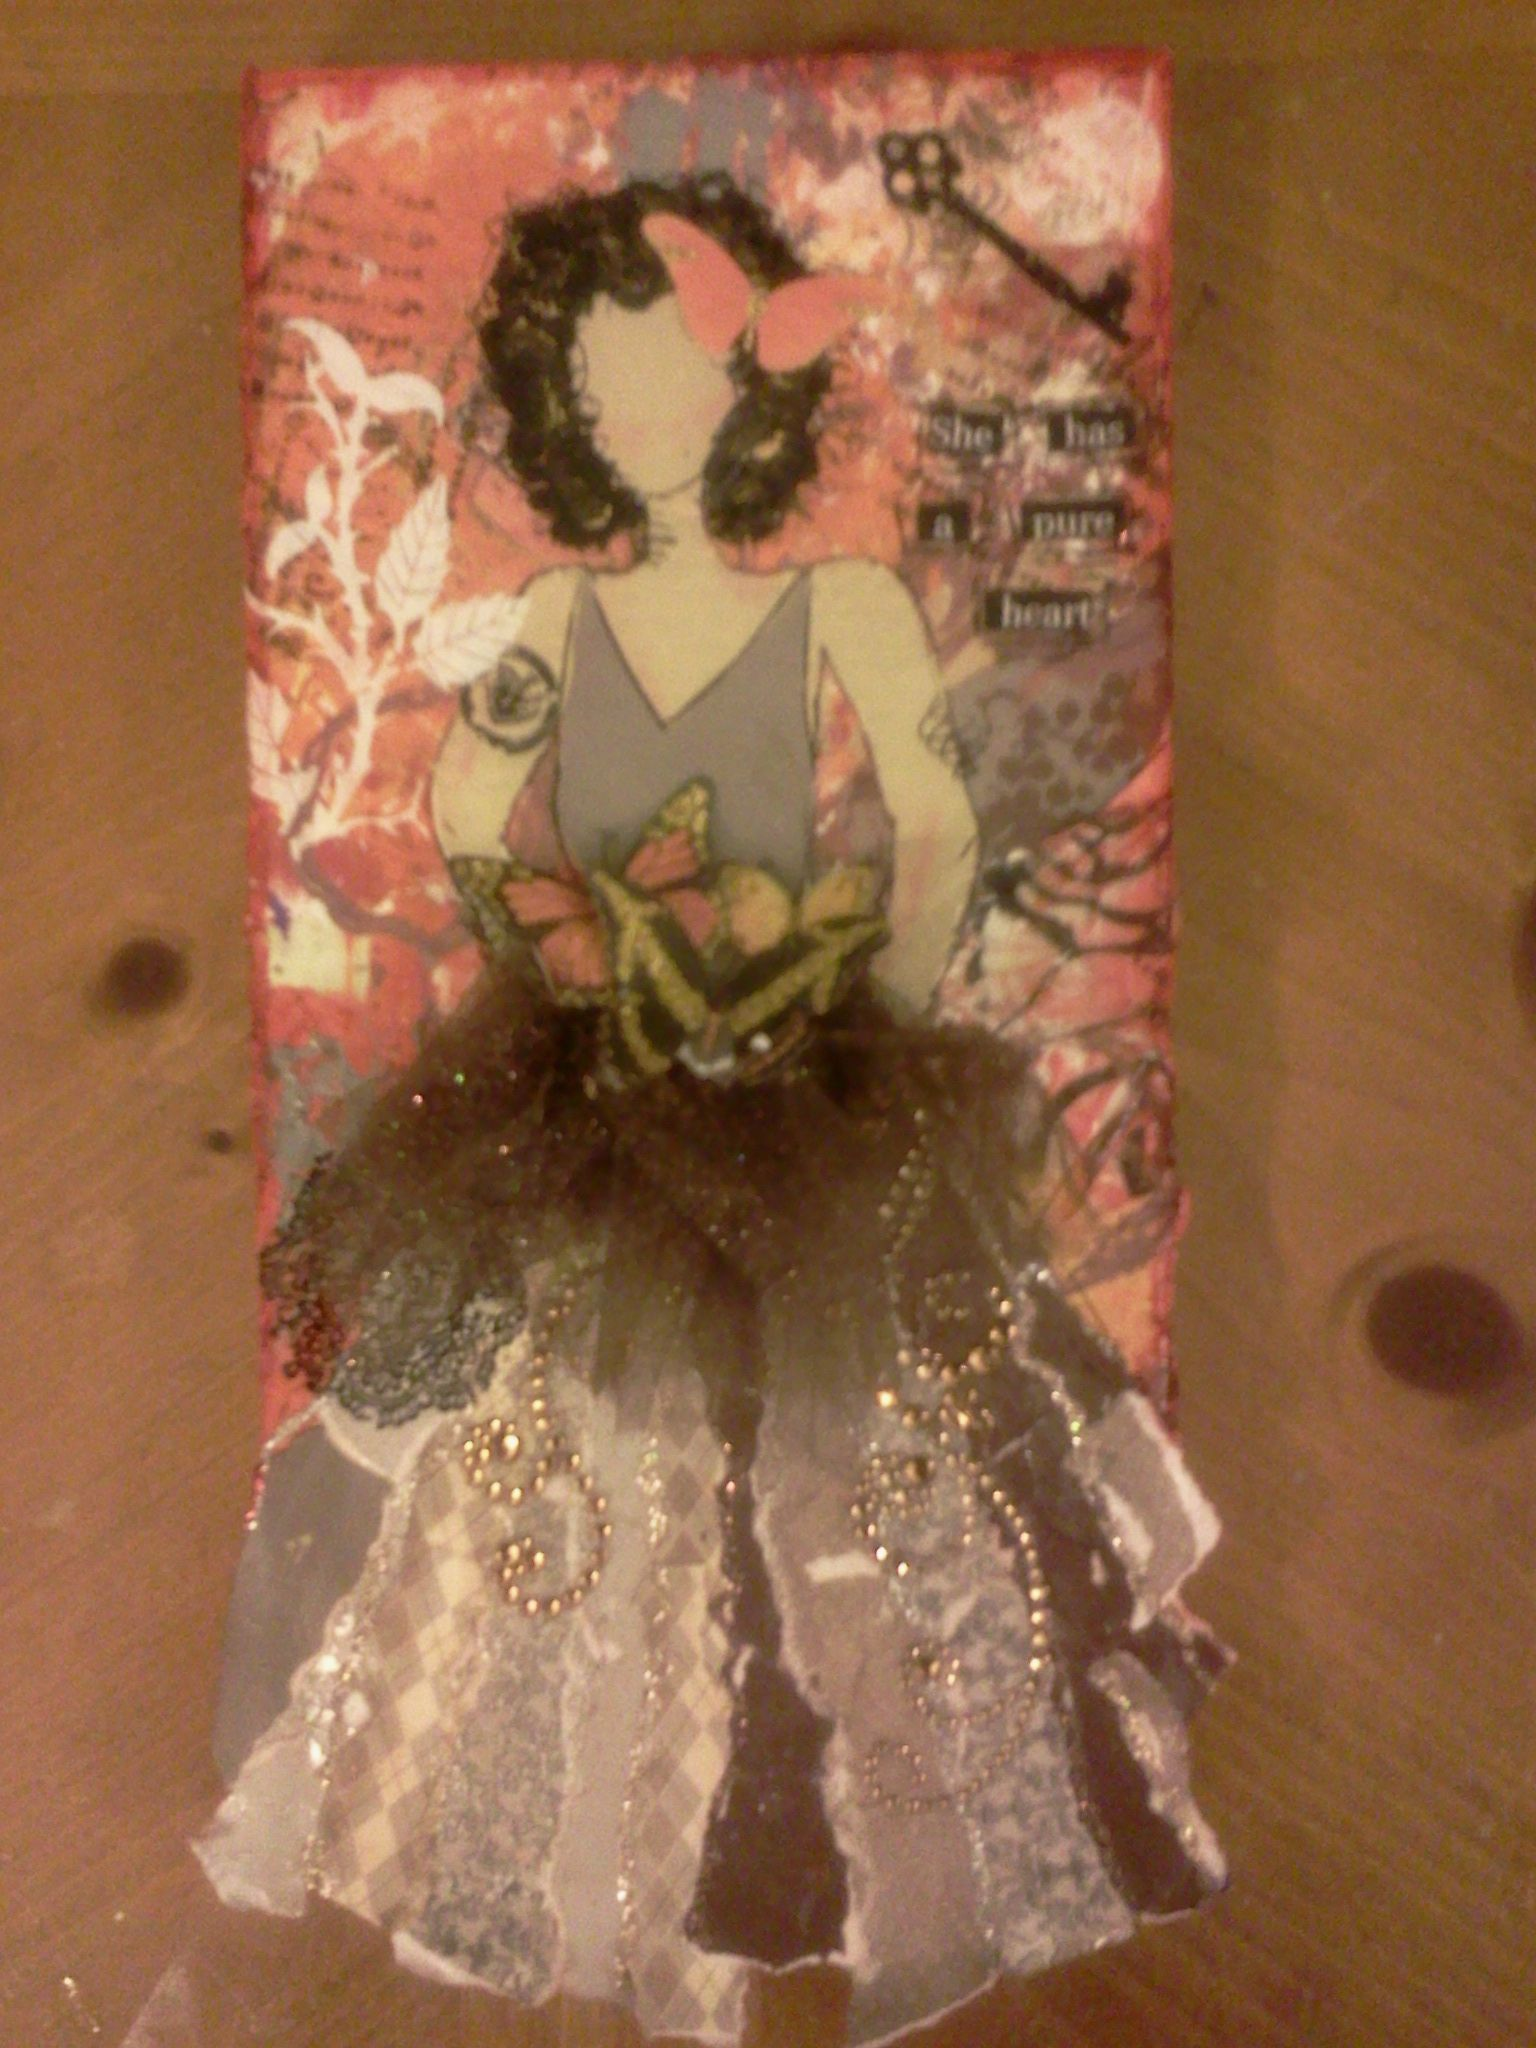 She has a pure heart. July 2012. Carla Bange. Inspired by the art of Julie Nutting from her book Collage Couture.